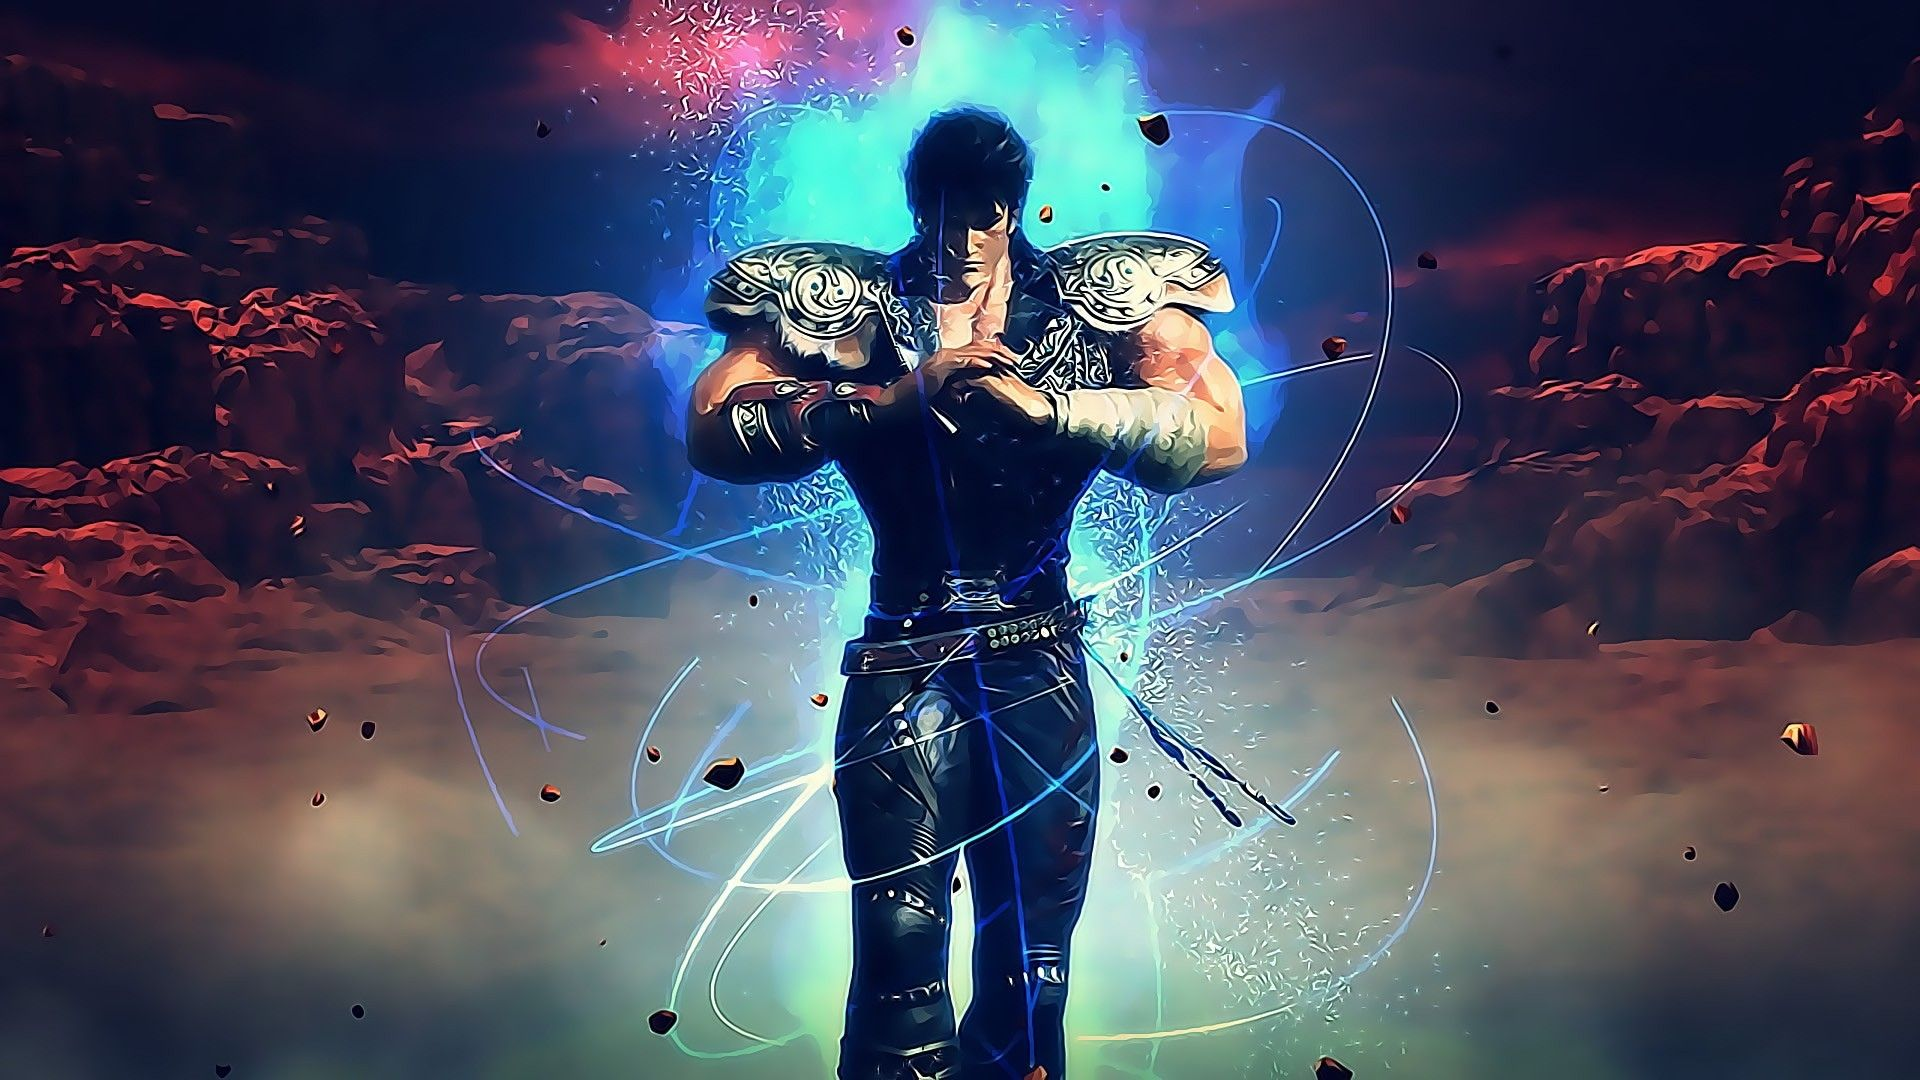 Hokuto No Ken Wallpaper 60 Images Wall Papers Wallpaper Anime